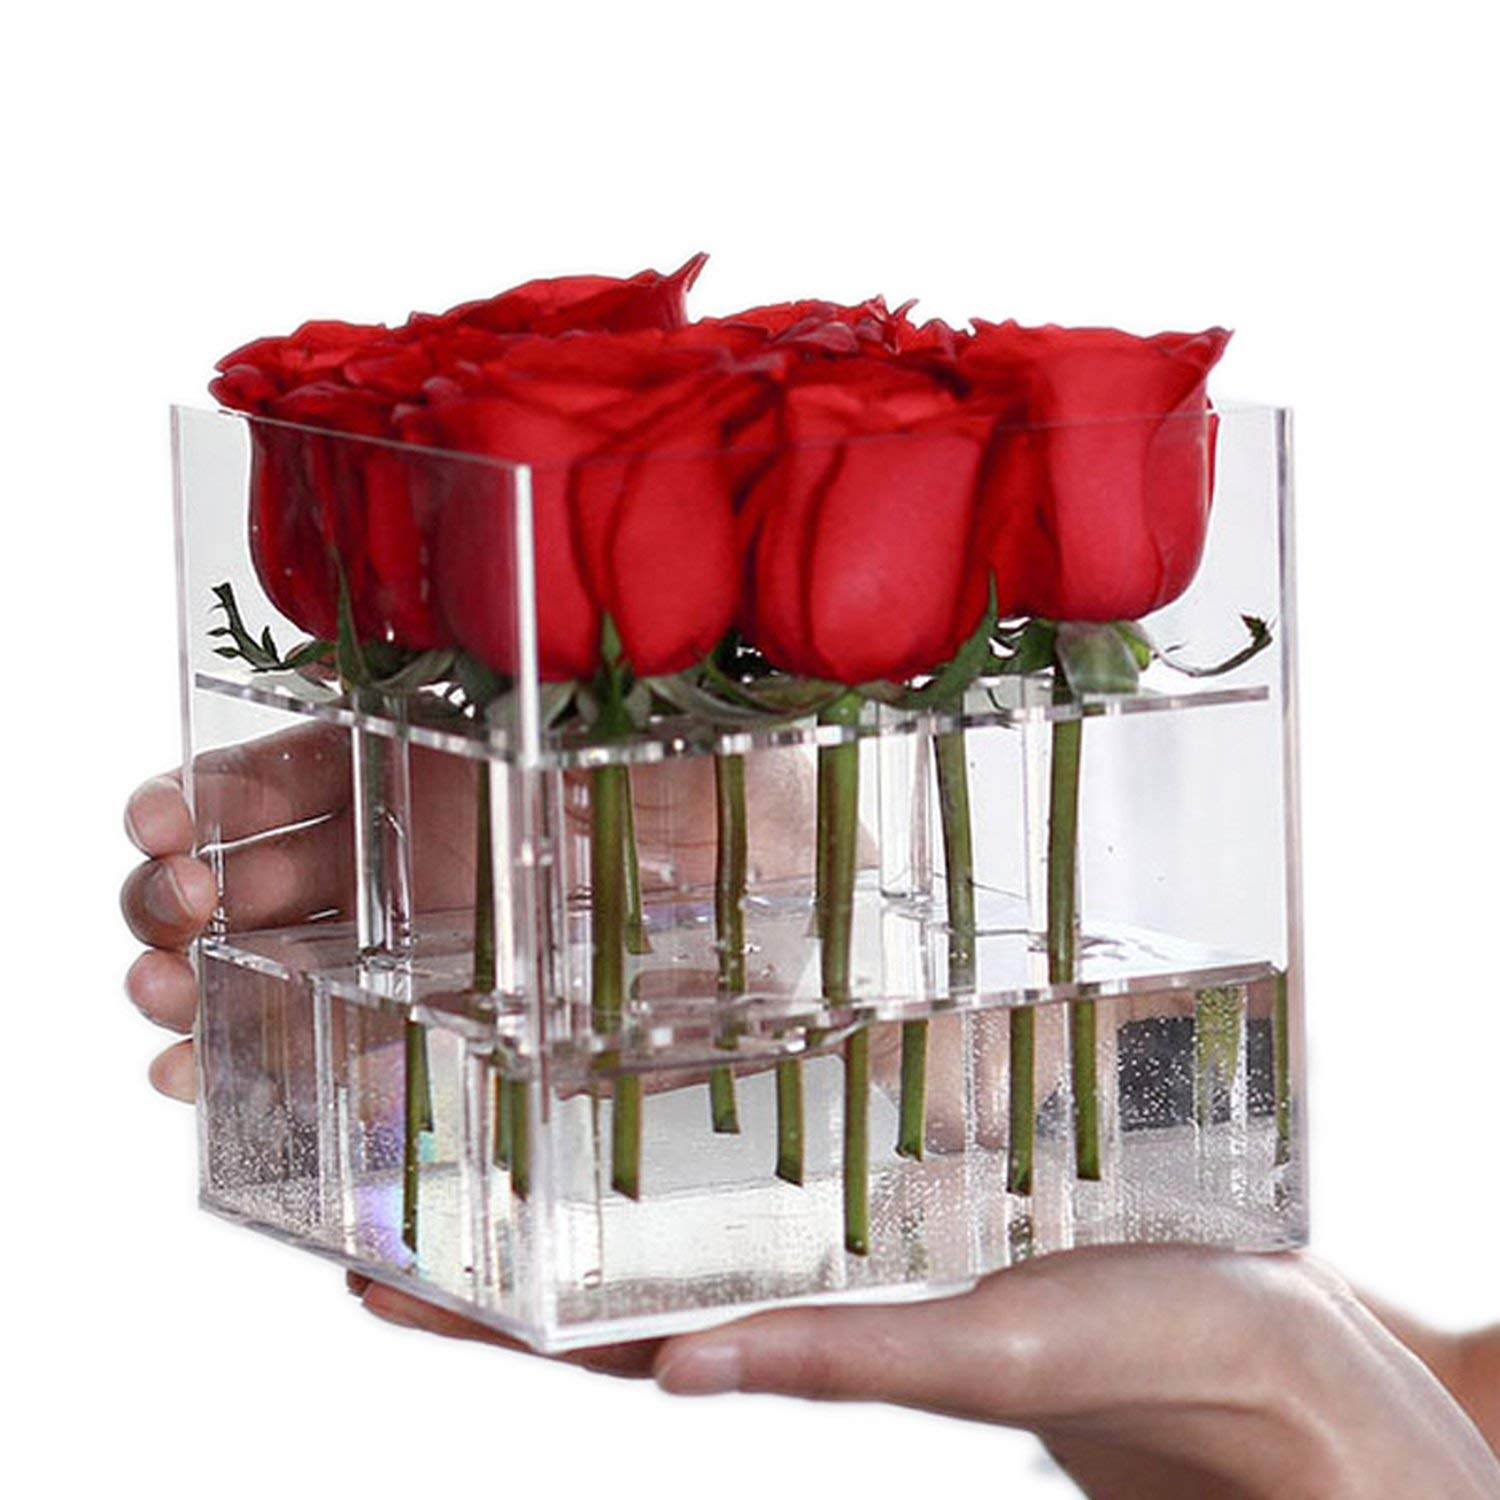 Buy Home Furnishing Rose Flower Box Makeup Artificial Flower Bouquet Flower Gift Box Valentine S Day Gift Case 16 Holes Online At Low Prices In India Amazon In